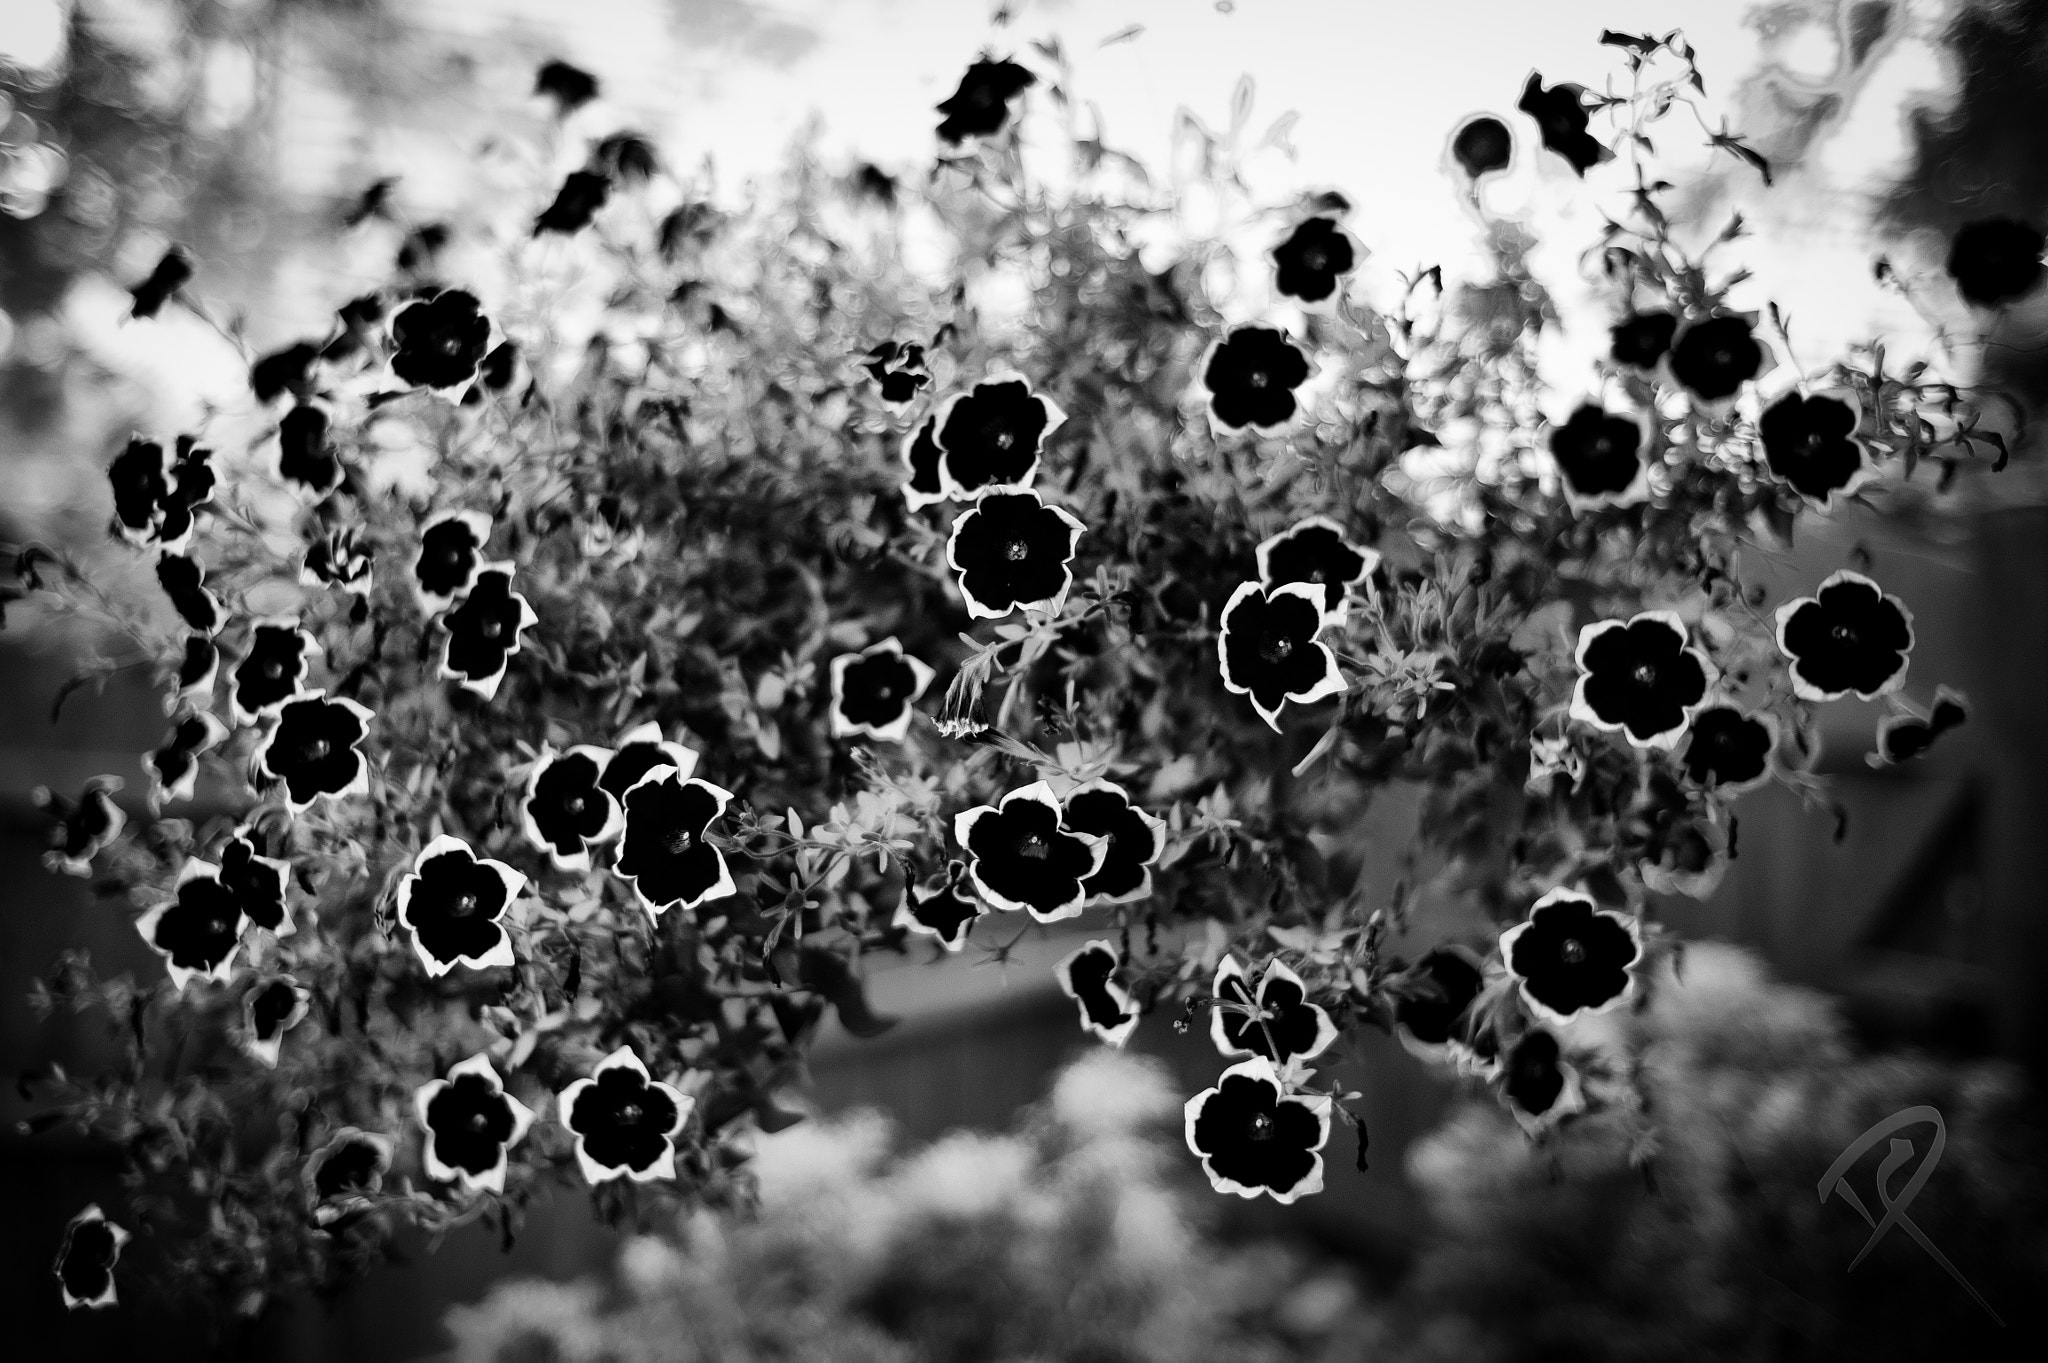 Photograph The Garden by David Miskinyar on 500px